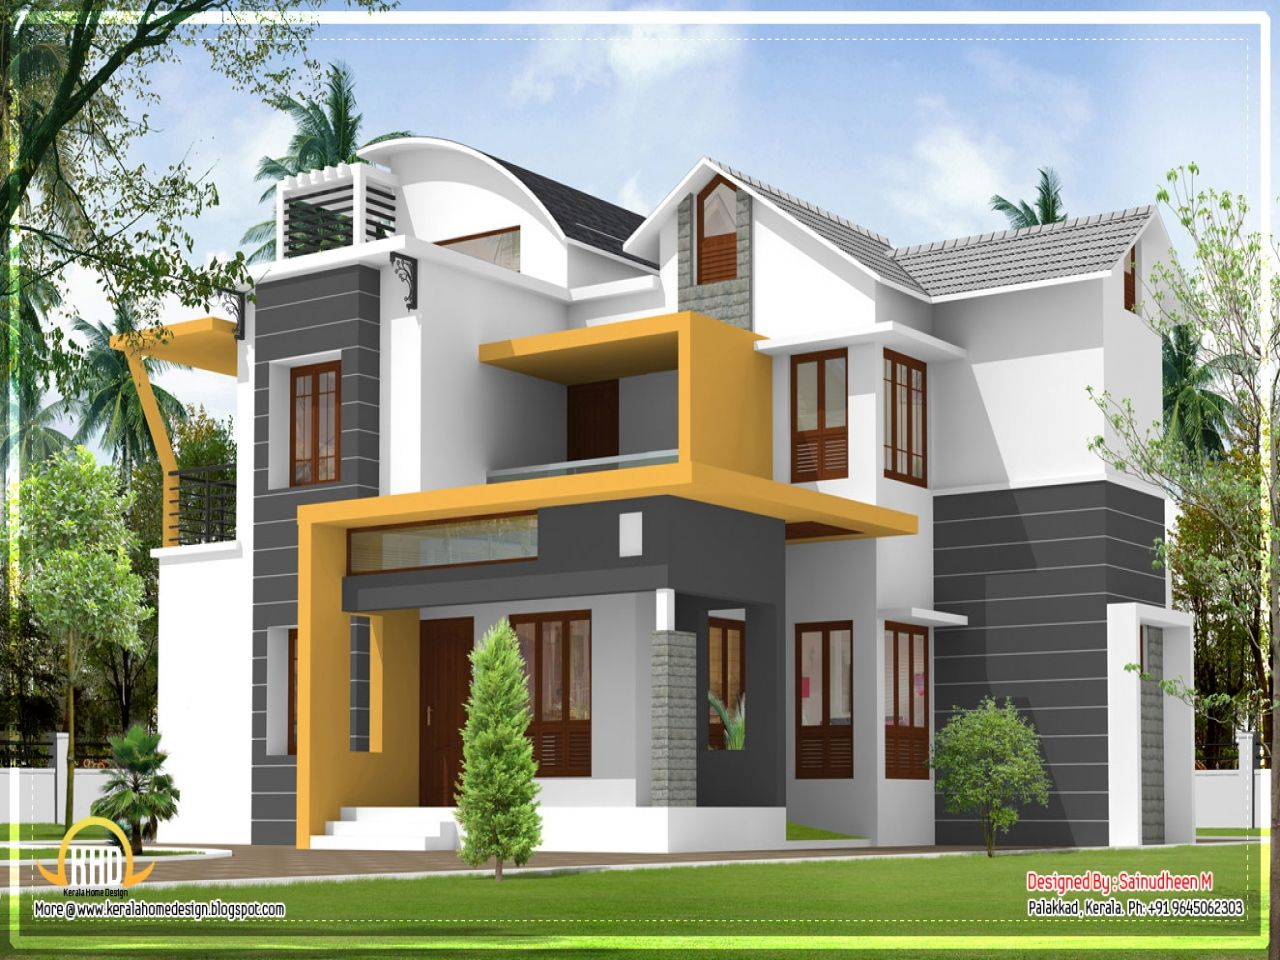 Kerala modern house design nepal also best home images on pinterest little houses small homes and rh